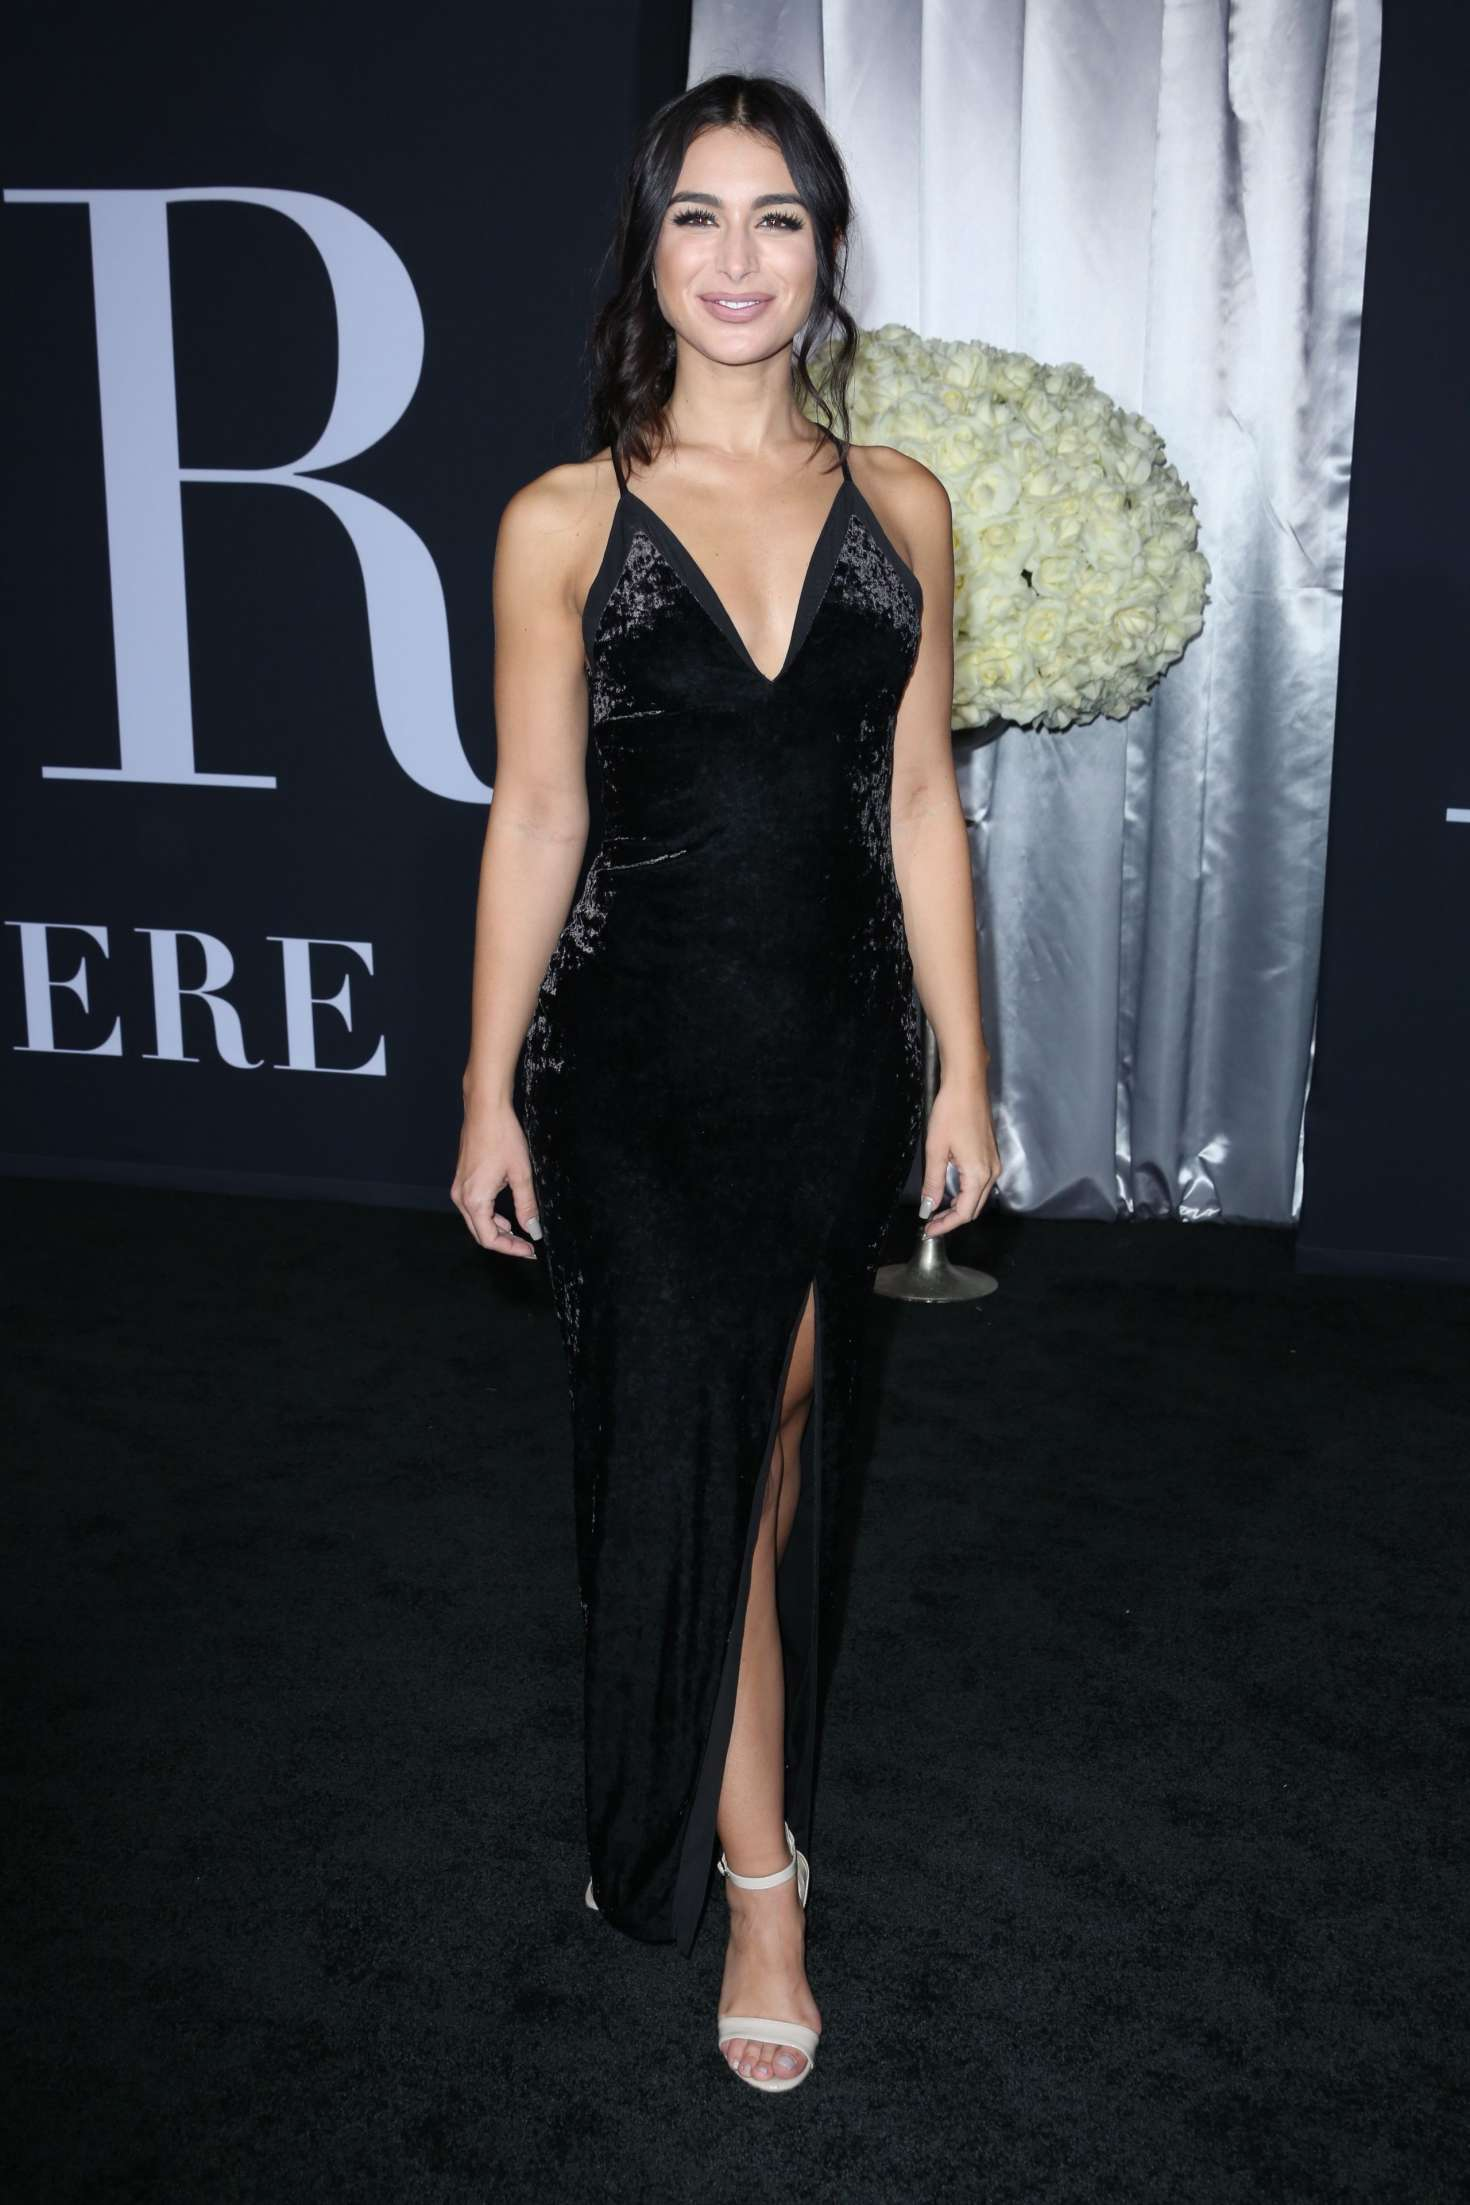 Ashley iaconetti fifty shades darker premiere in los angeles nude (46 photo), Is a cute Celebrites fotos